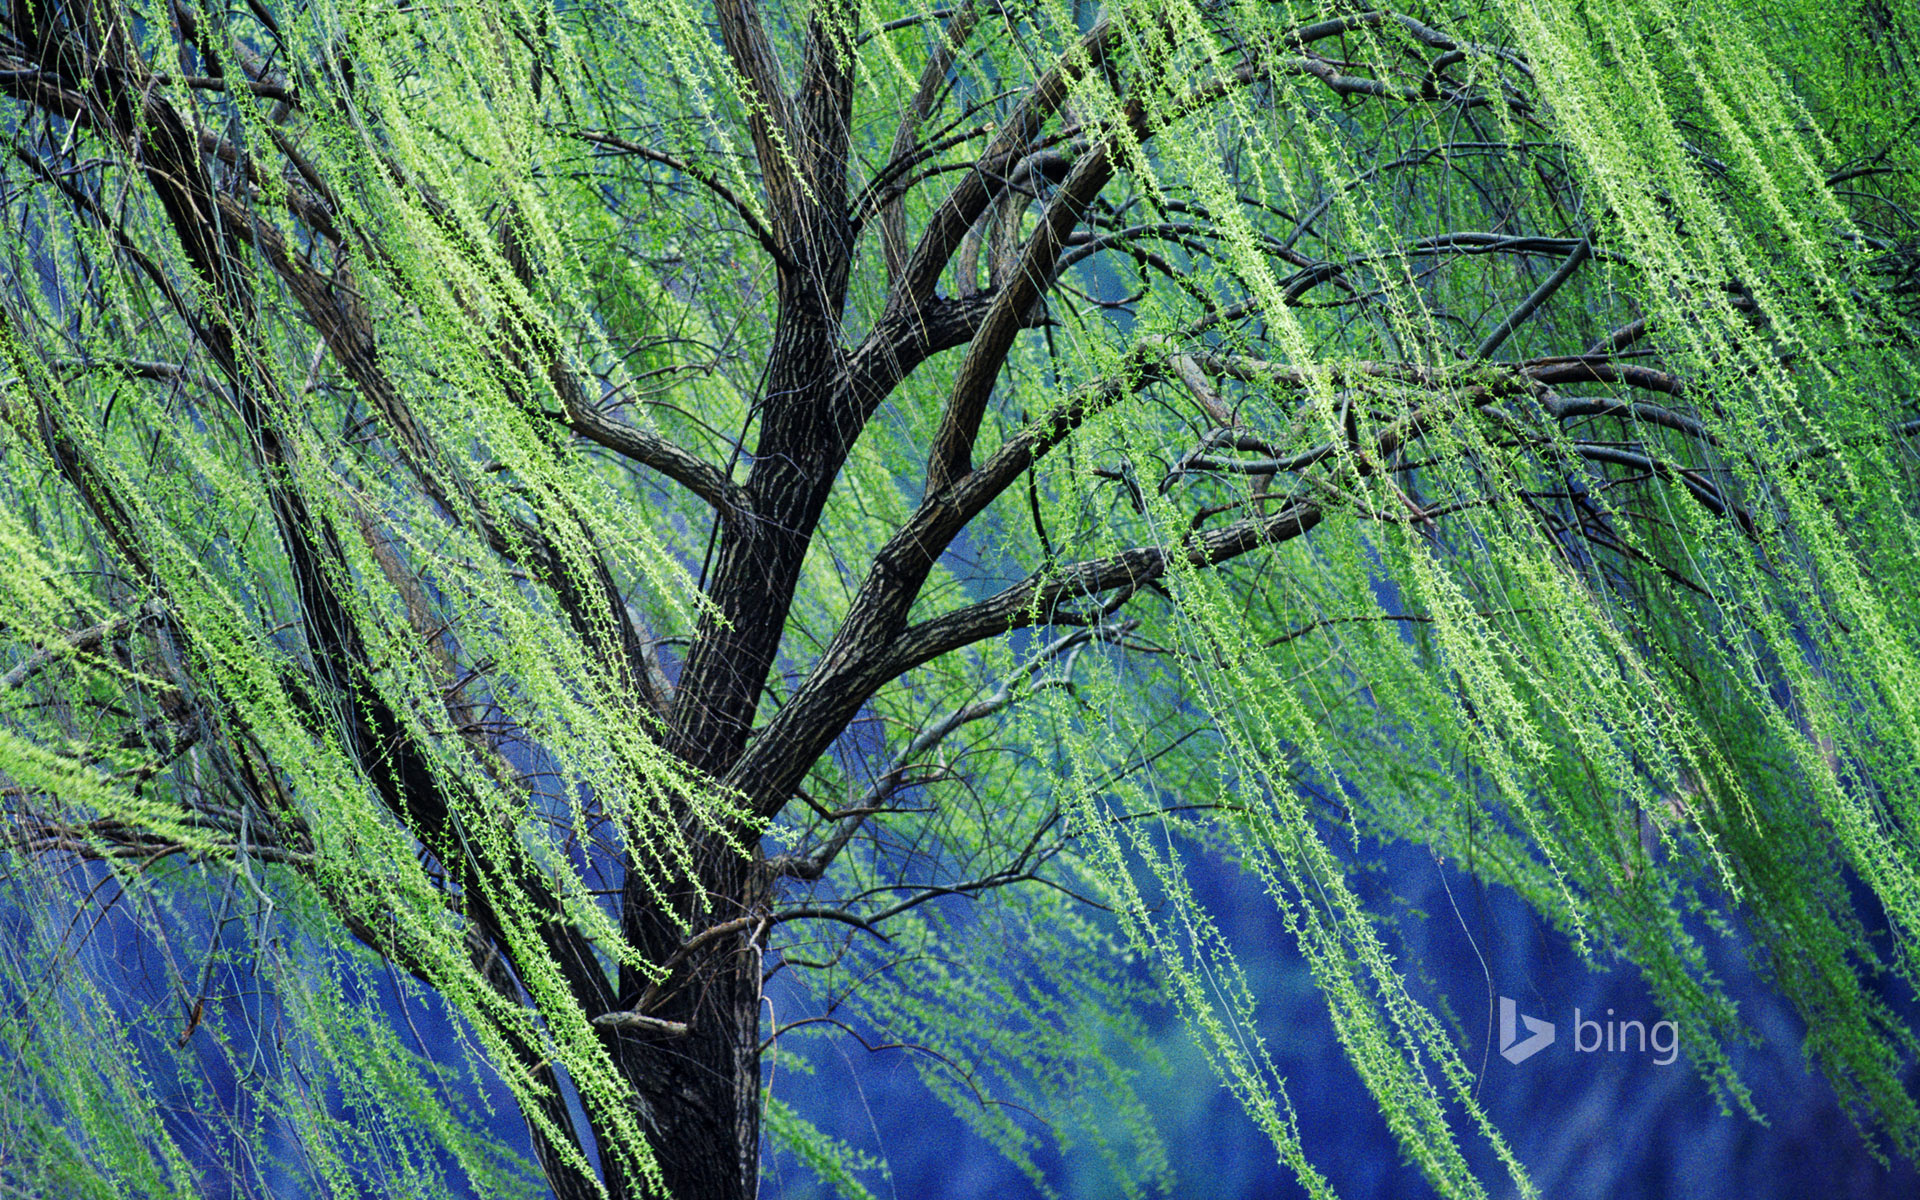 weeping willow tree Rolf Nussbaumer PhotographyAlamy   Bing 1920x1200